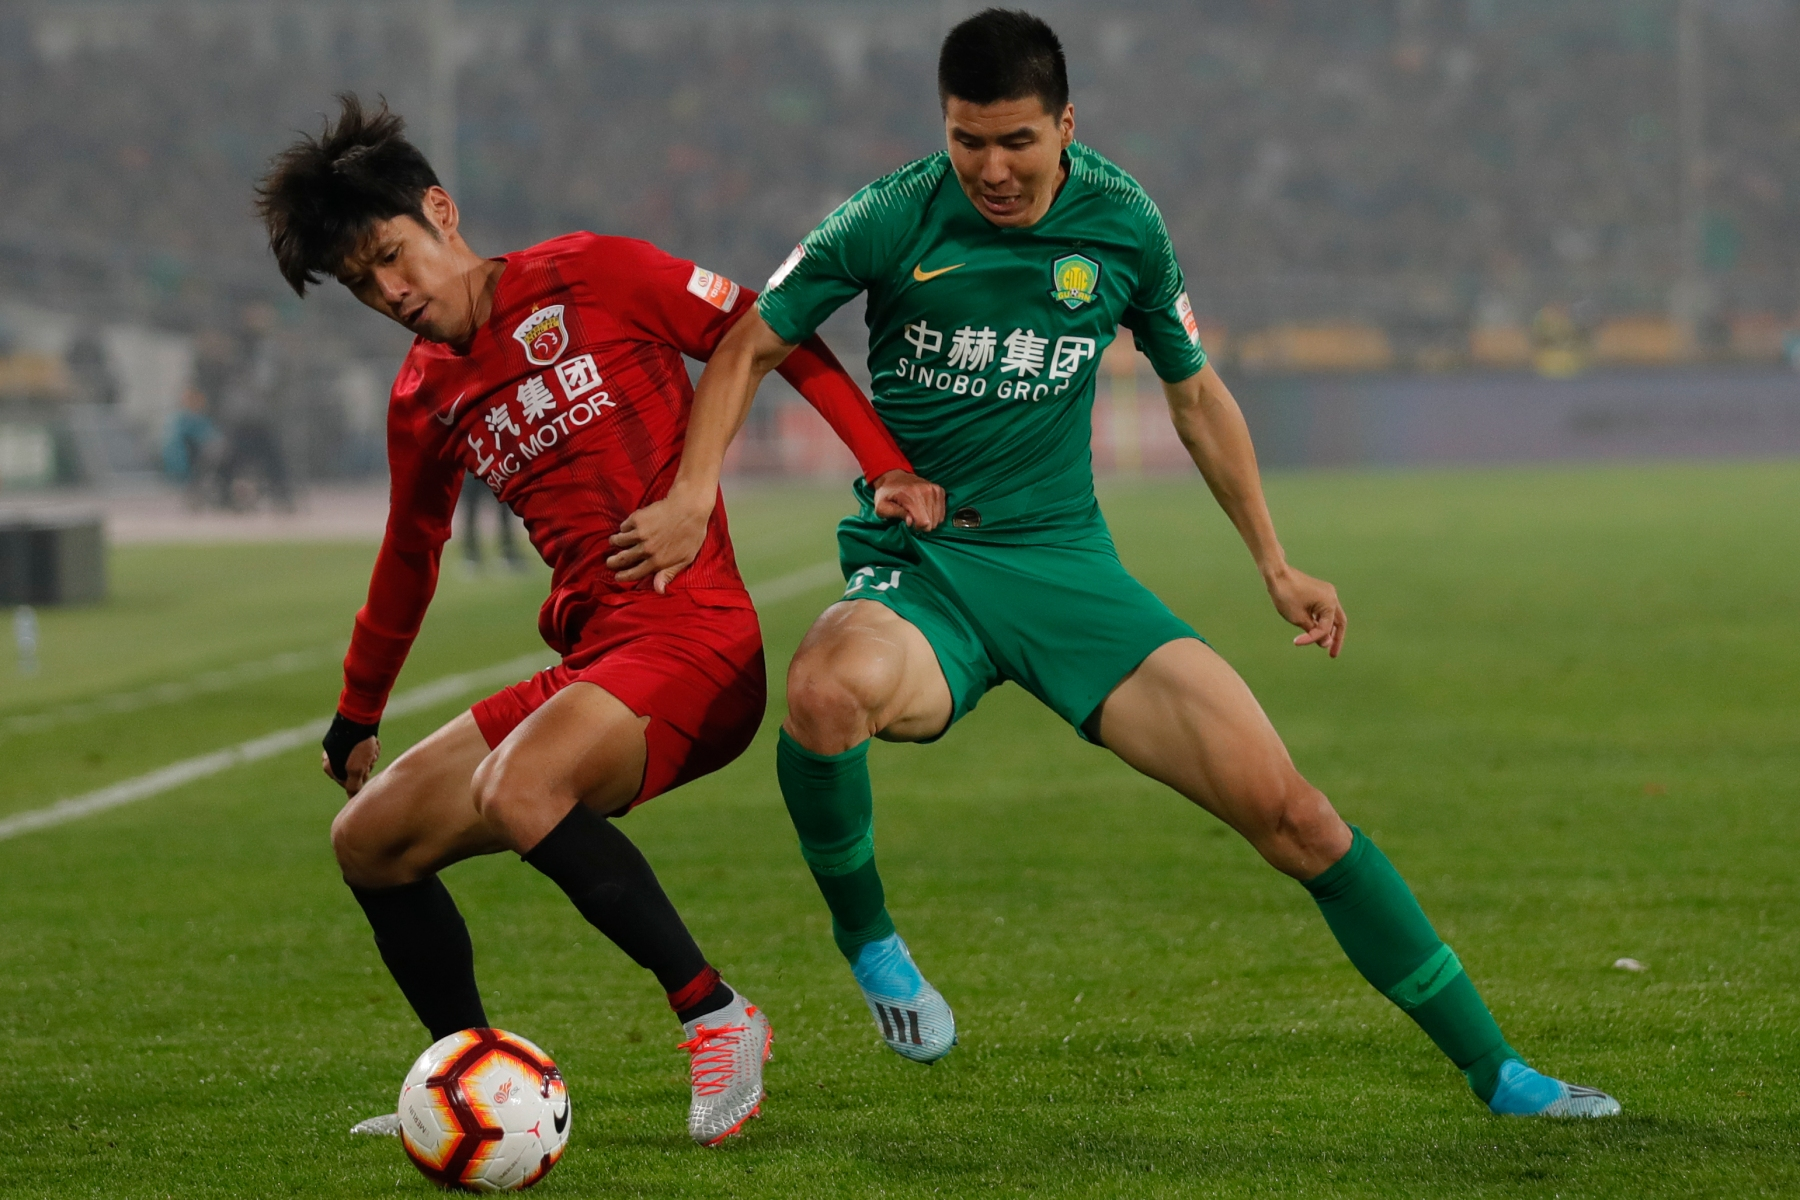 2019 China Super League - Beijing Guoan v Shanghai SIPG